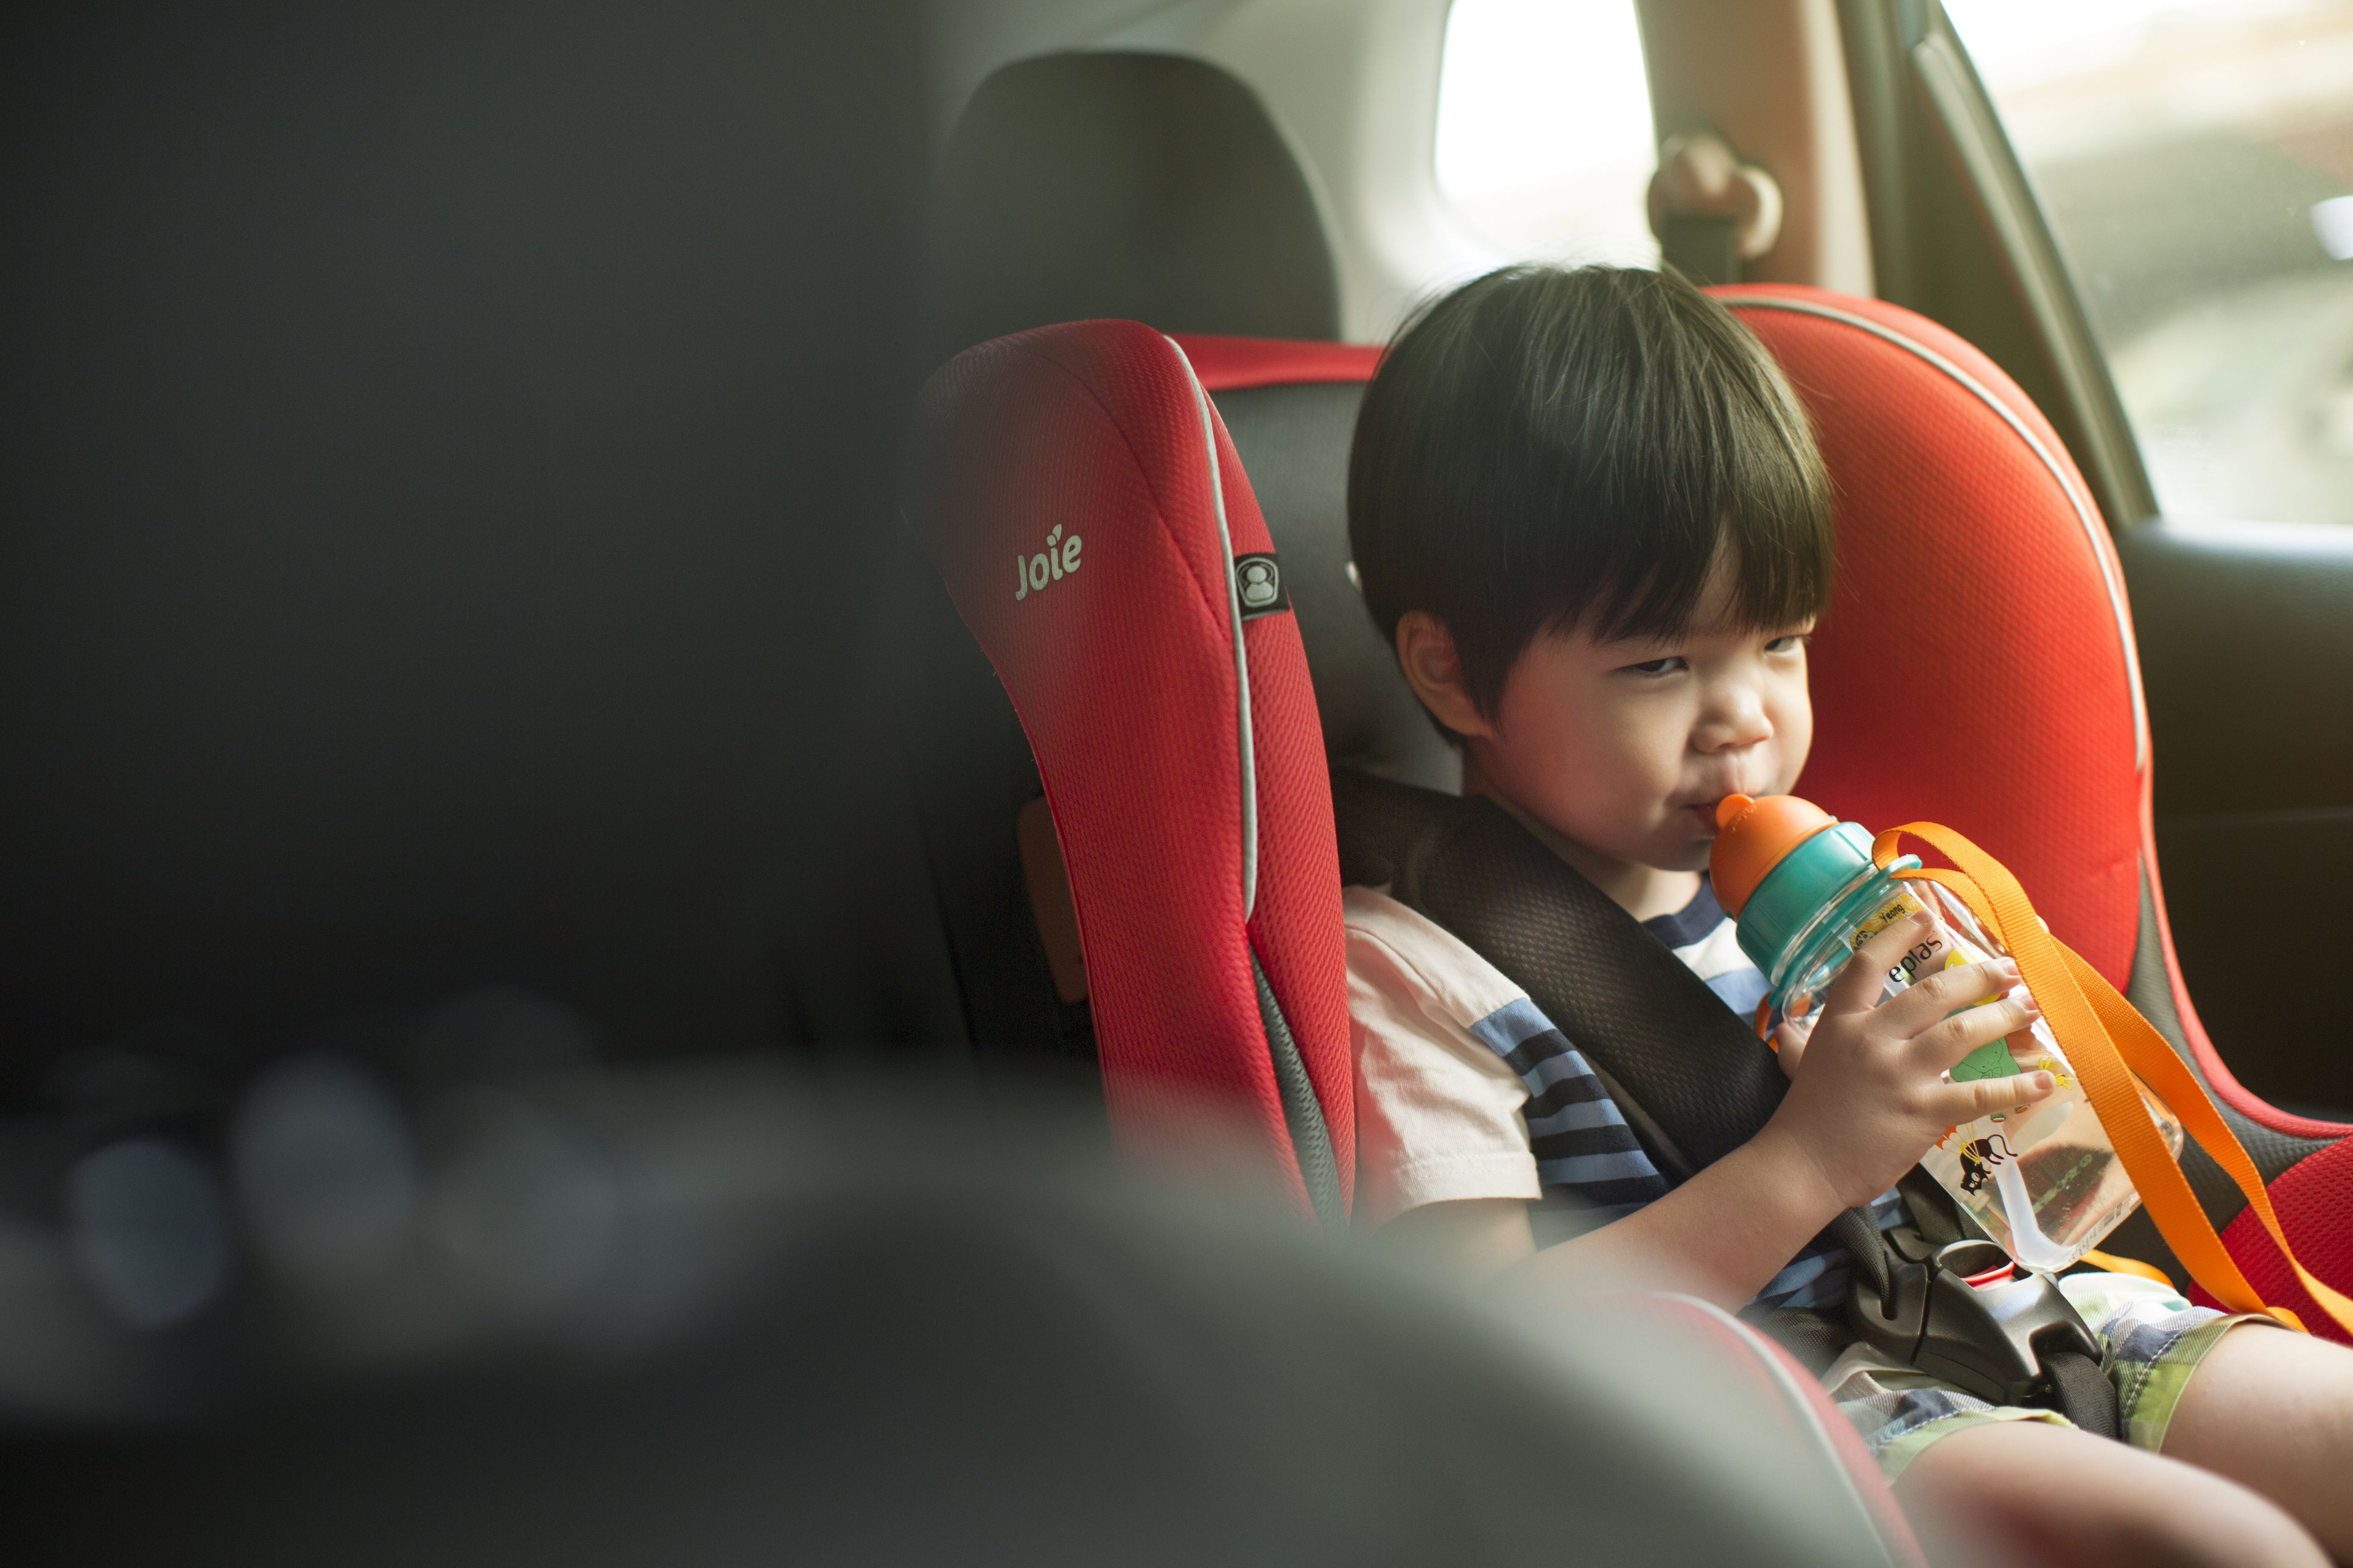 Georgia S Child Car Safety Laws